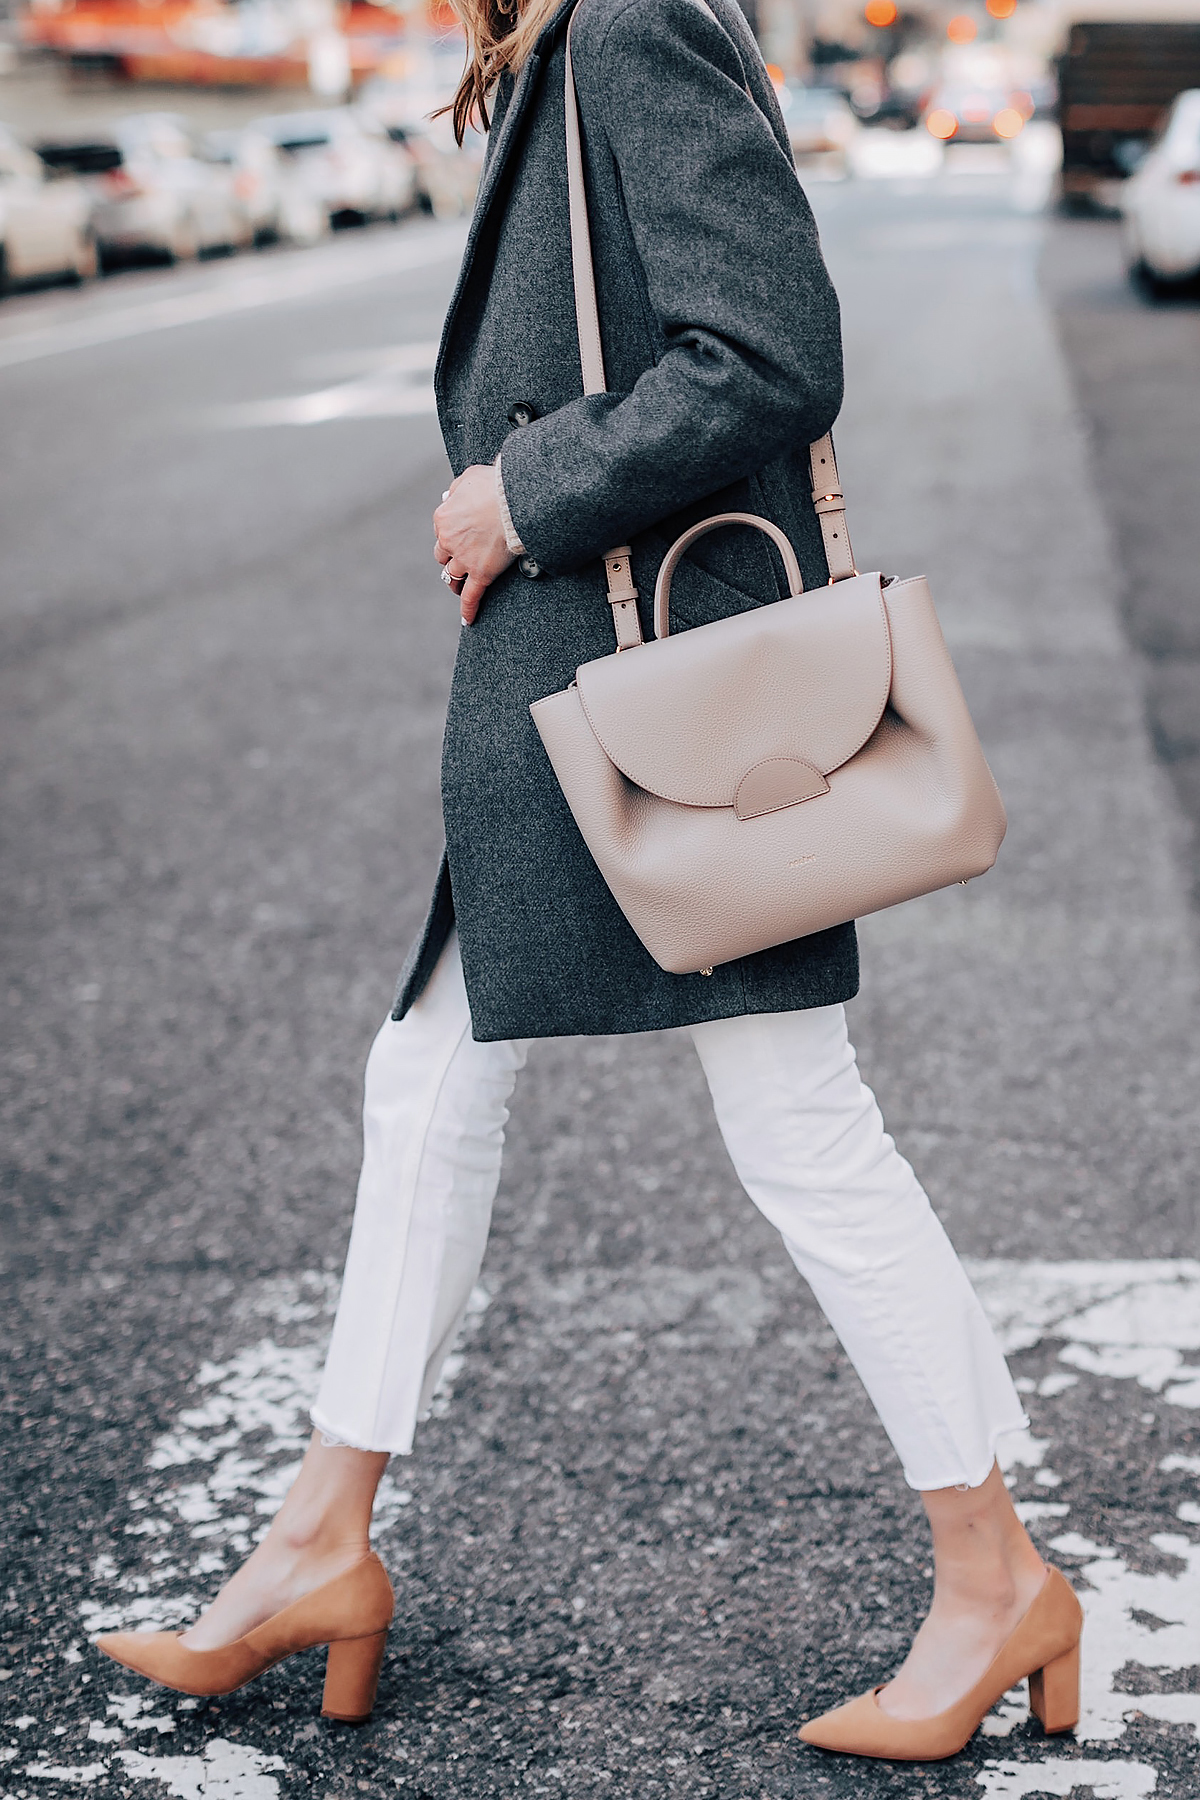 Woman Wearing HM Grey Wool Coat Everlane White Ankle Crop Jeans Tan Pumps Polene Grey Handbag Fashion Jackson Fashion Blogger Street Style NYFW